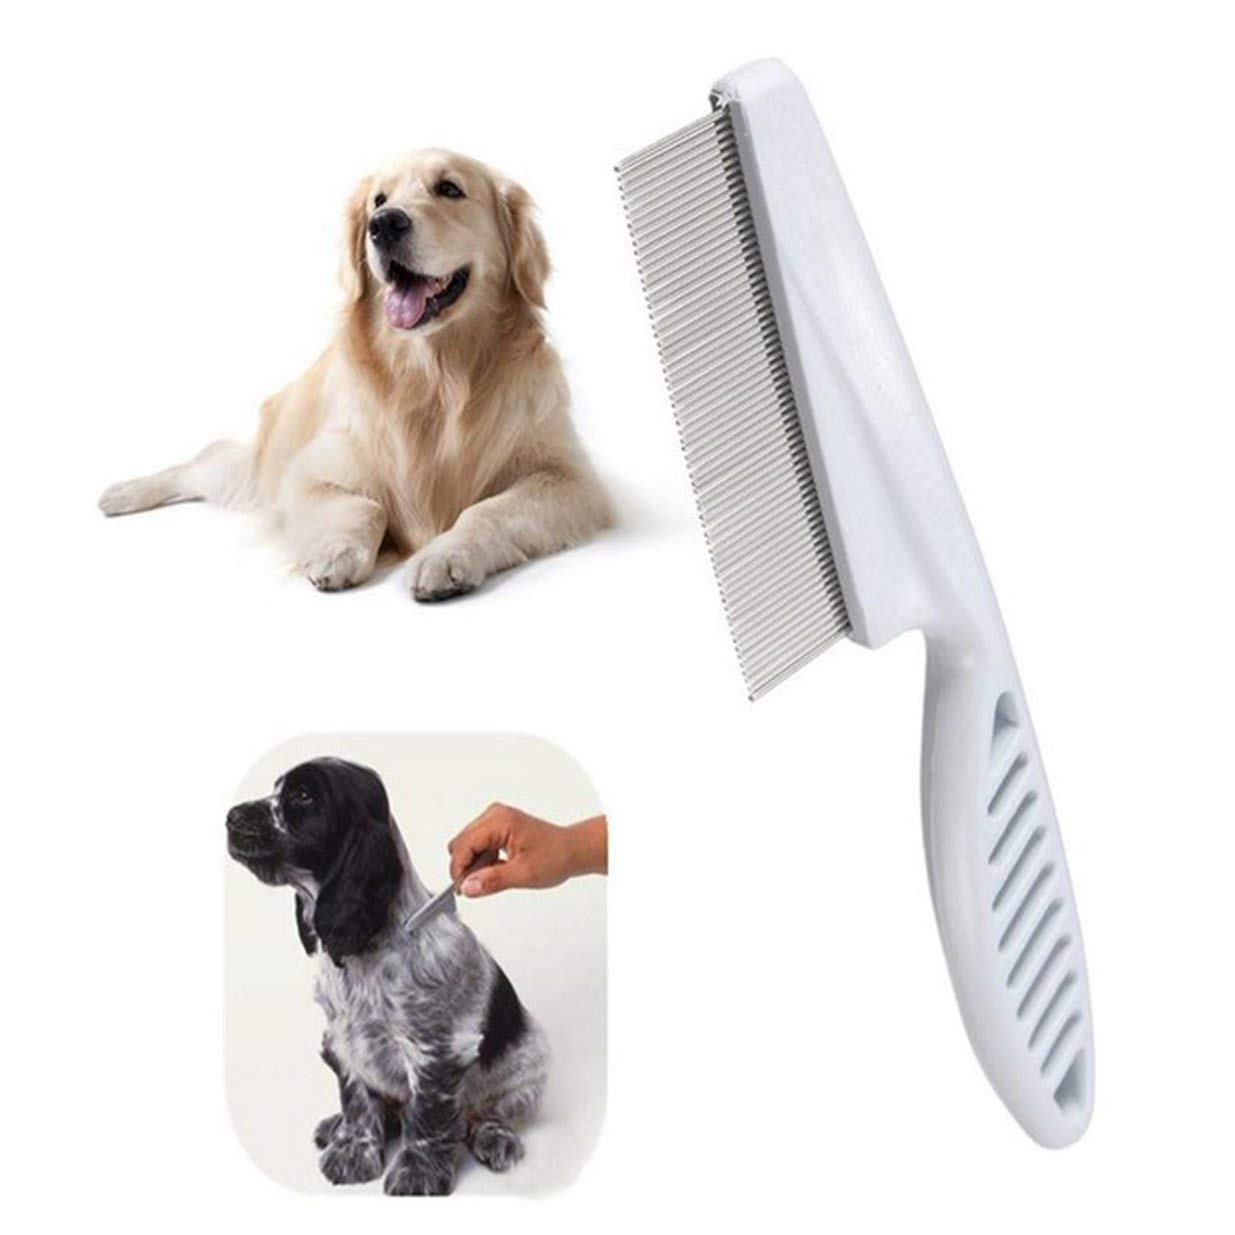 Sairis High Comfort Head Lice Comb Metal Nit Head Hair Lice Comb Fine Toothed Flea Flee with Handle For Kids Pet Tool-white